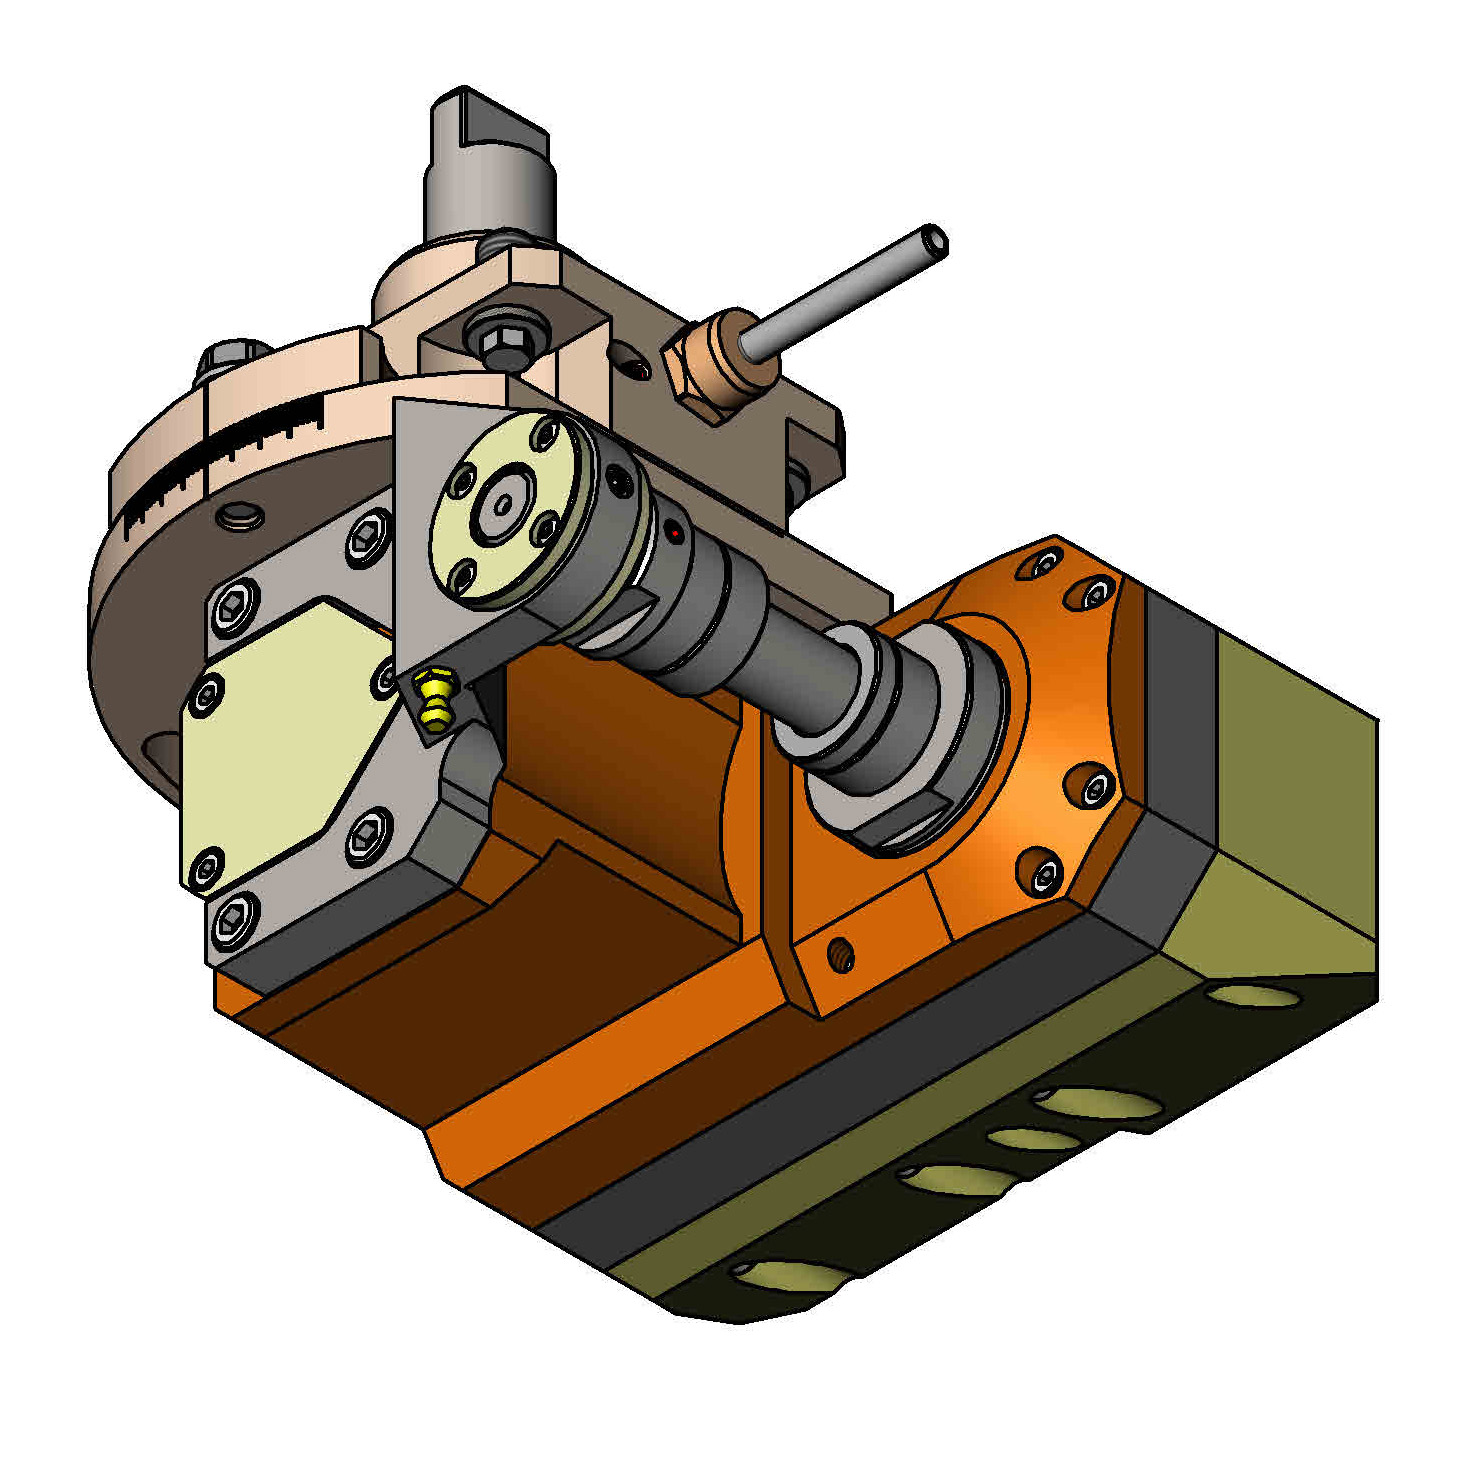 CYLINDRICAL SHANK 40 Driven Tool Holder.